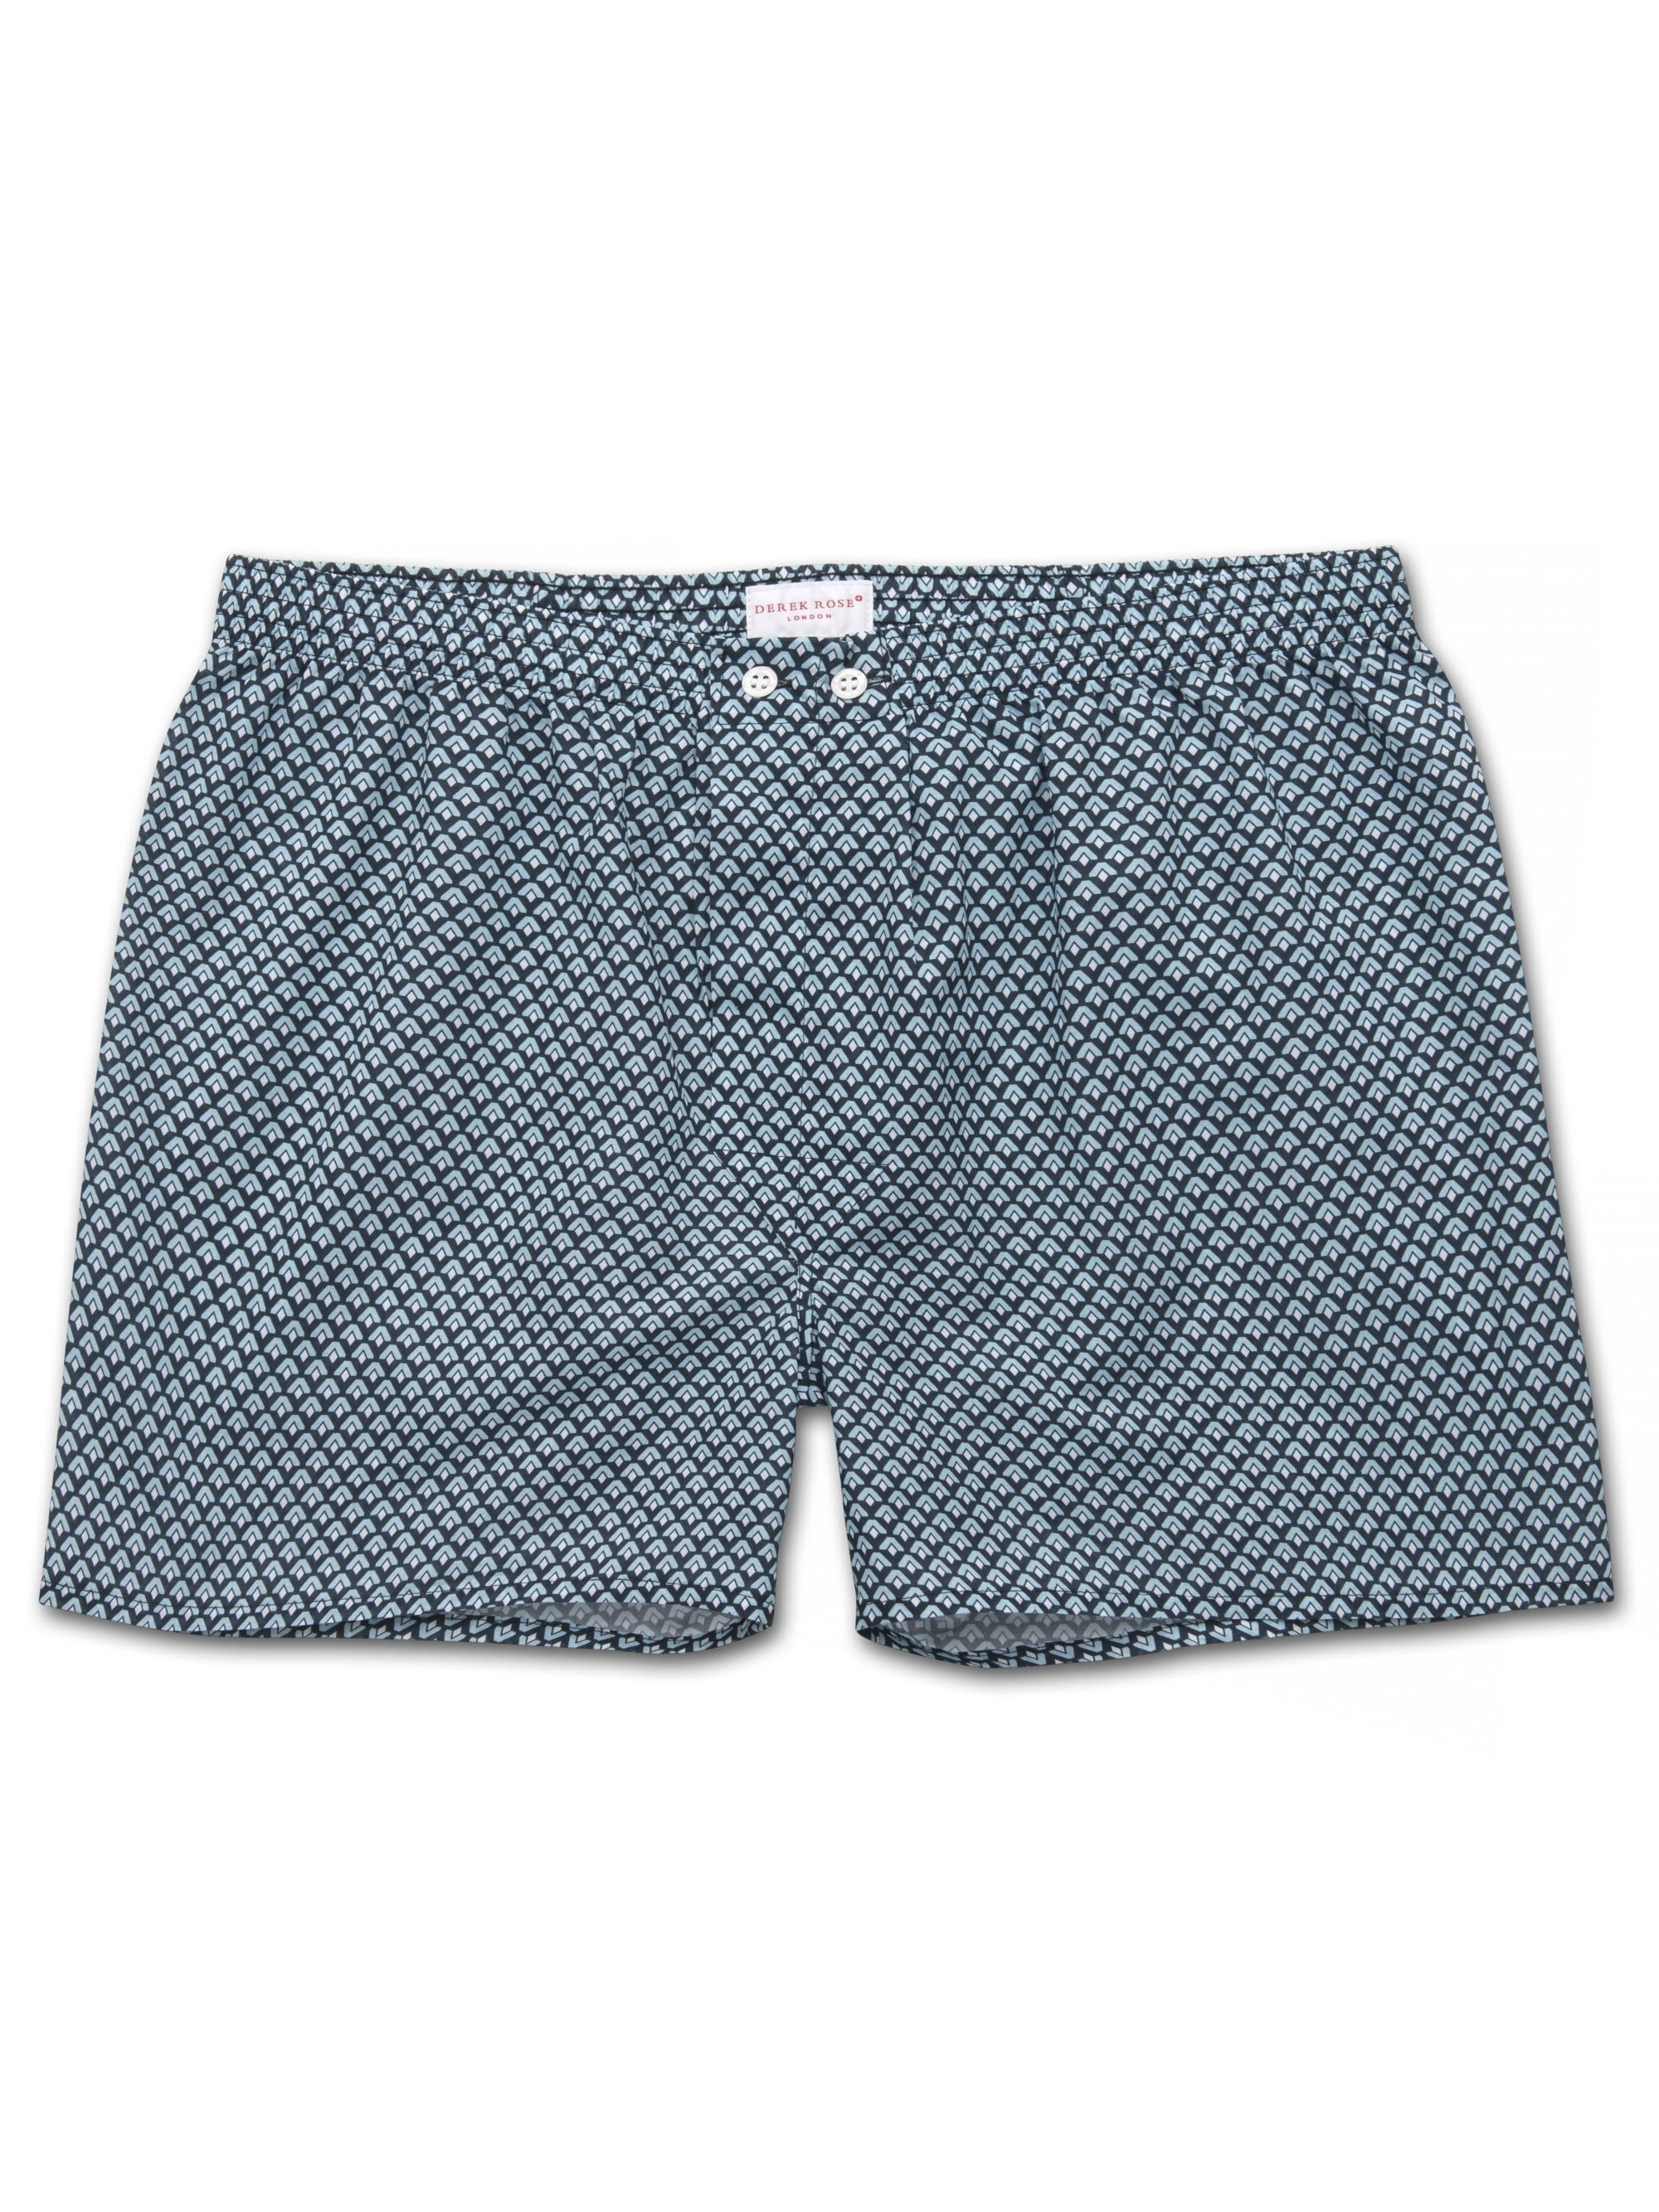 Men's Classic Fit Boxer Shorts Ledbury 31 Cotton Batiste Navy